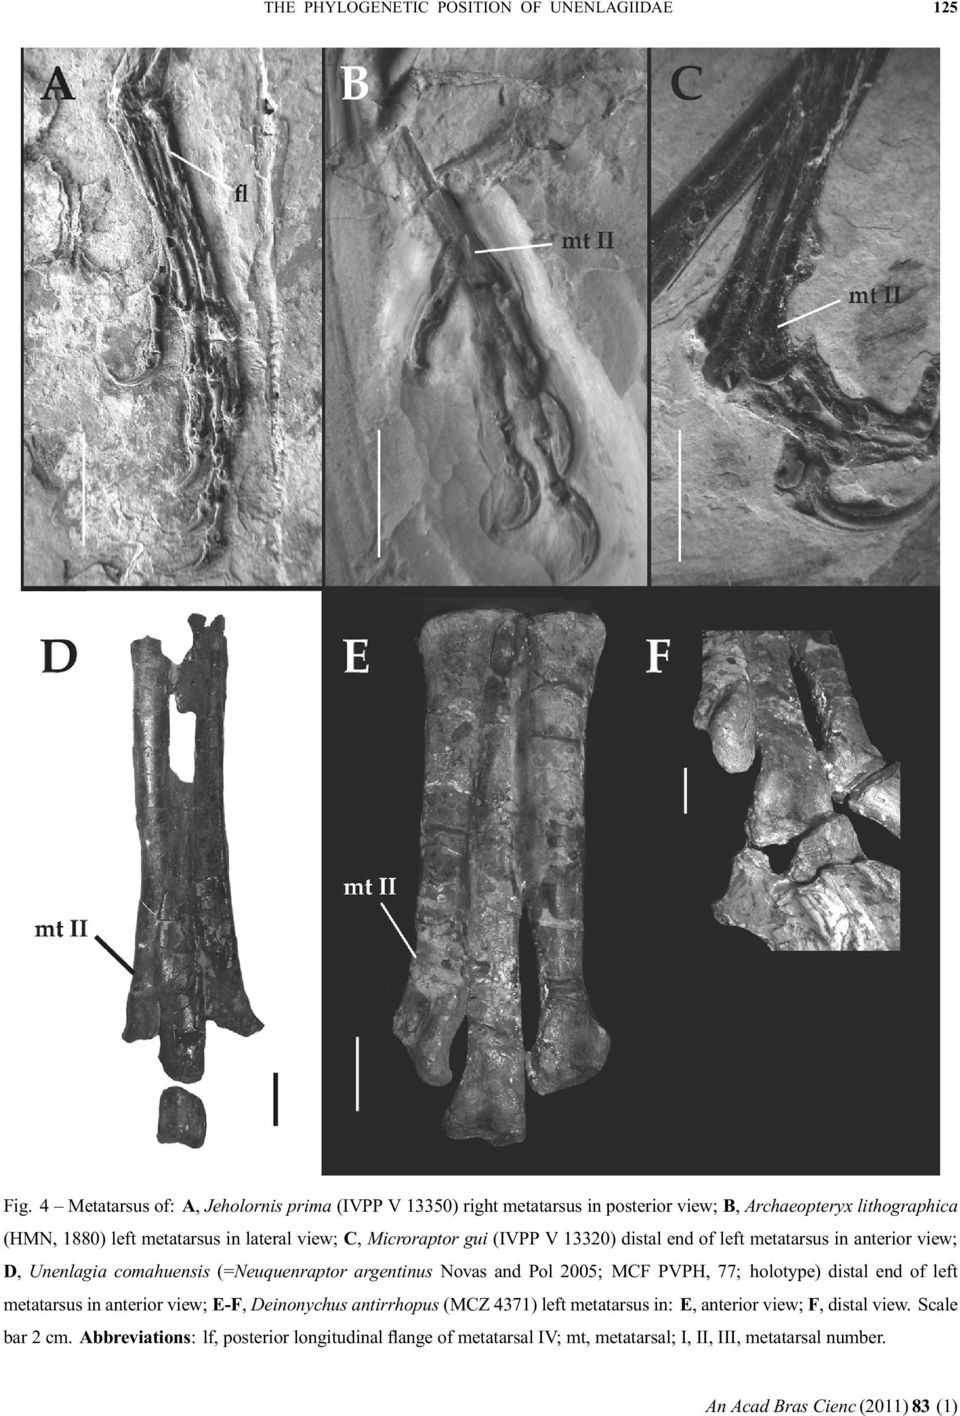 The same condition has been reported for Buitreraptor and Rahonavis (Forster et al. 1998, Makovicky et al. 2005; Fig. 4). In addition, Archaeopteryx (HMN 1880, Paul 2002; Fig.